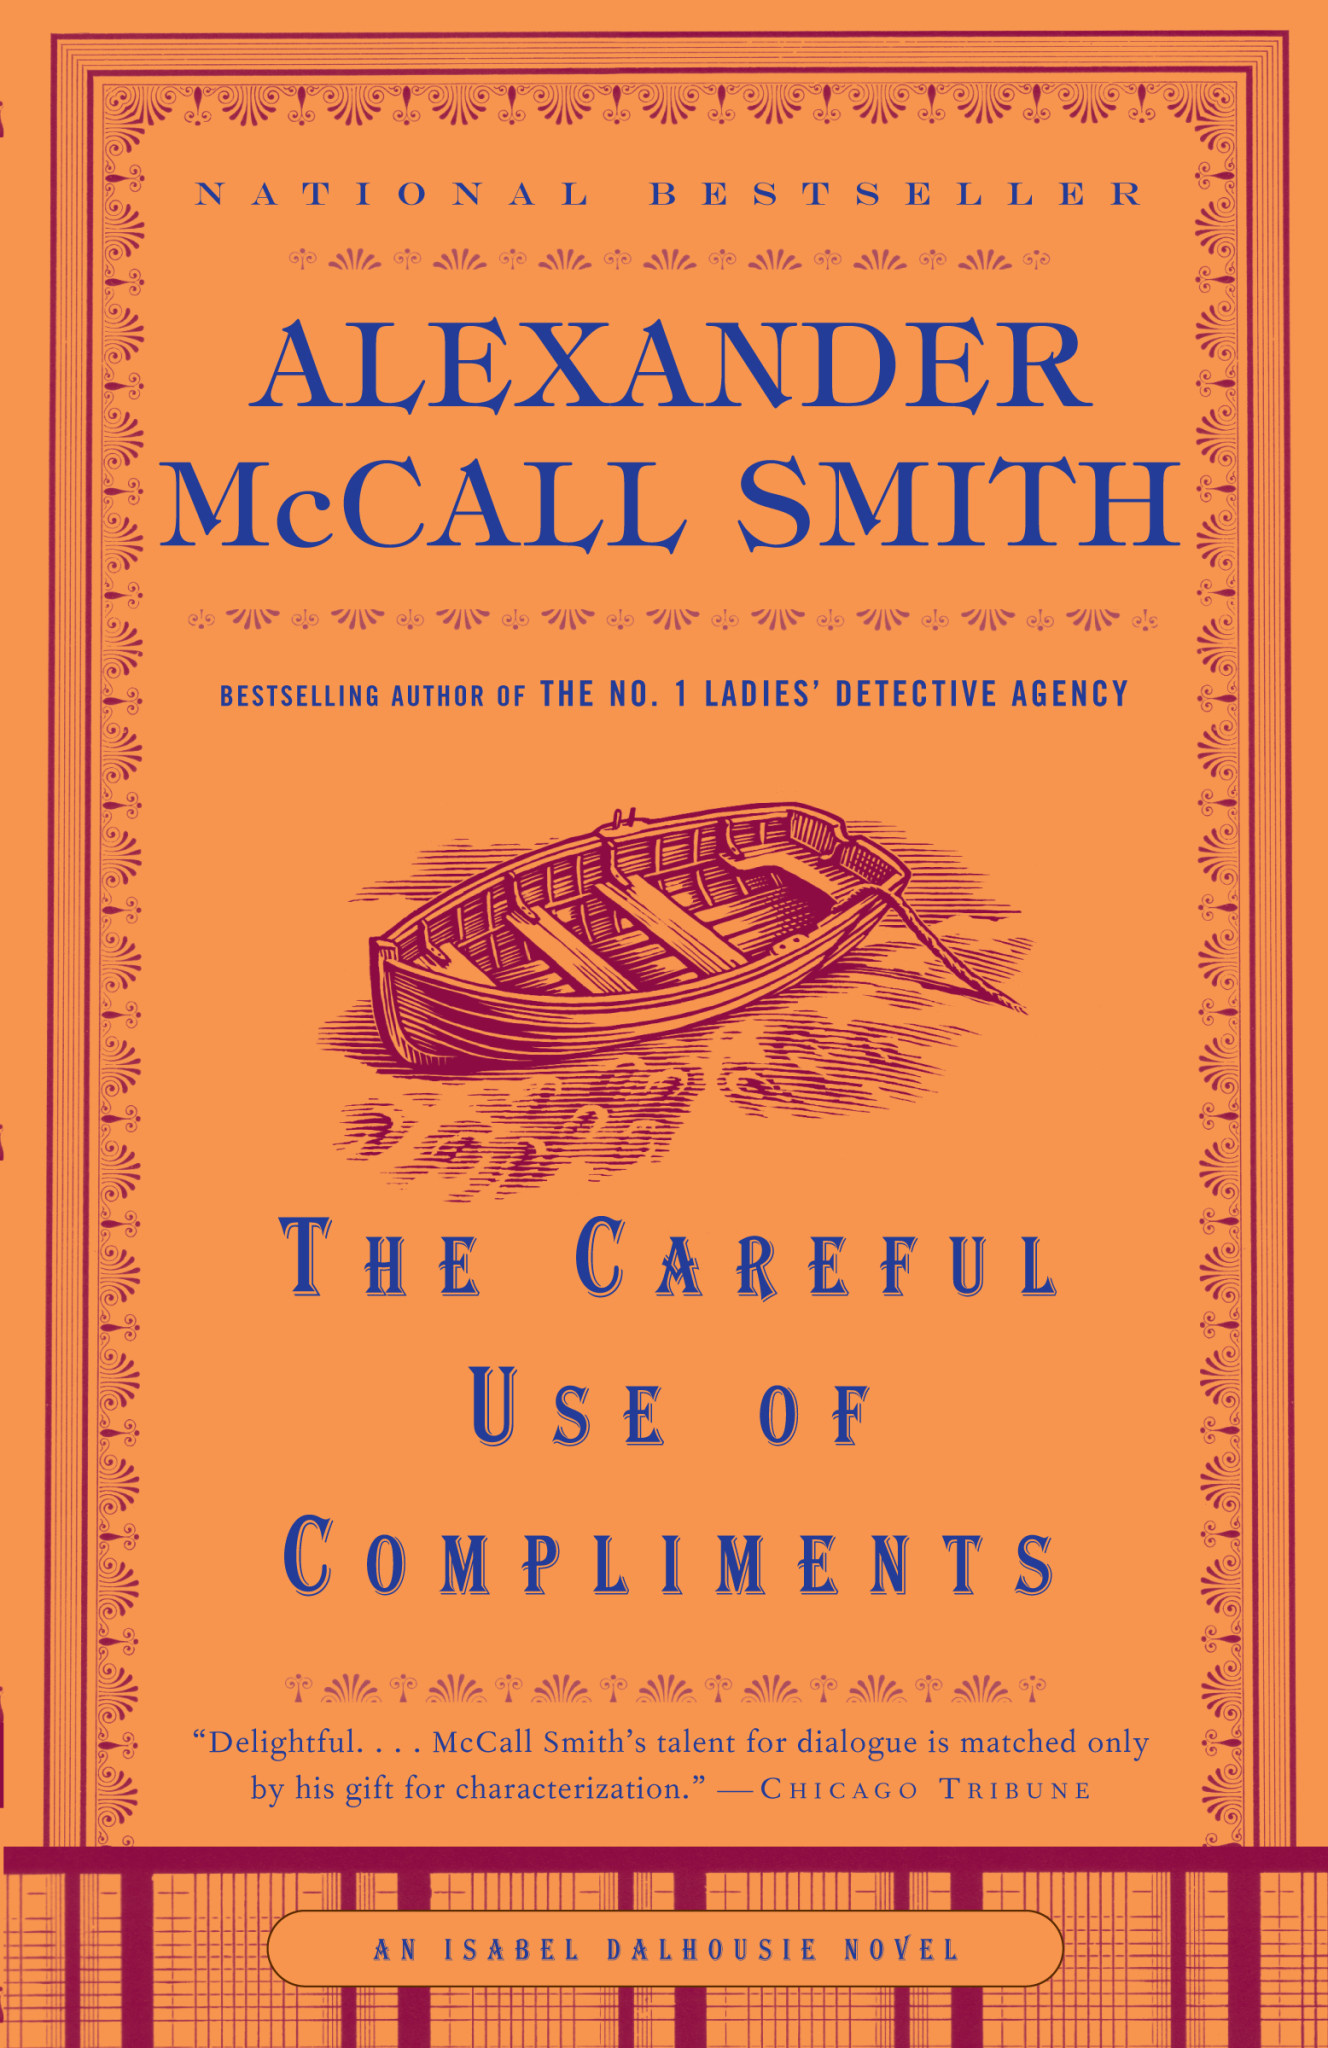 The Careful Use of Compliments: an Isabel Dalhousie Novel